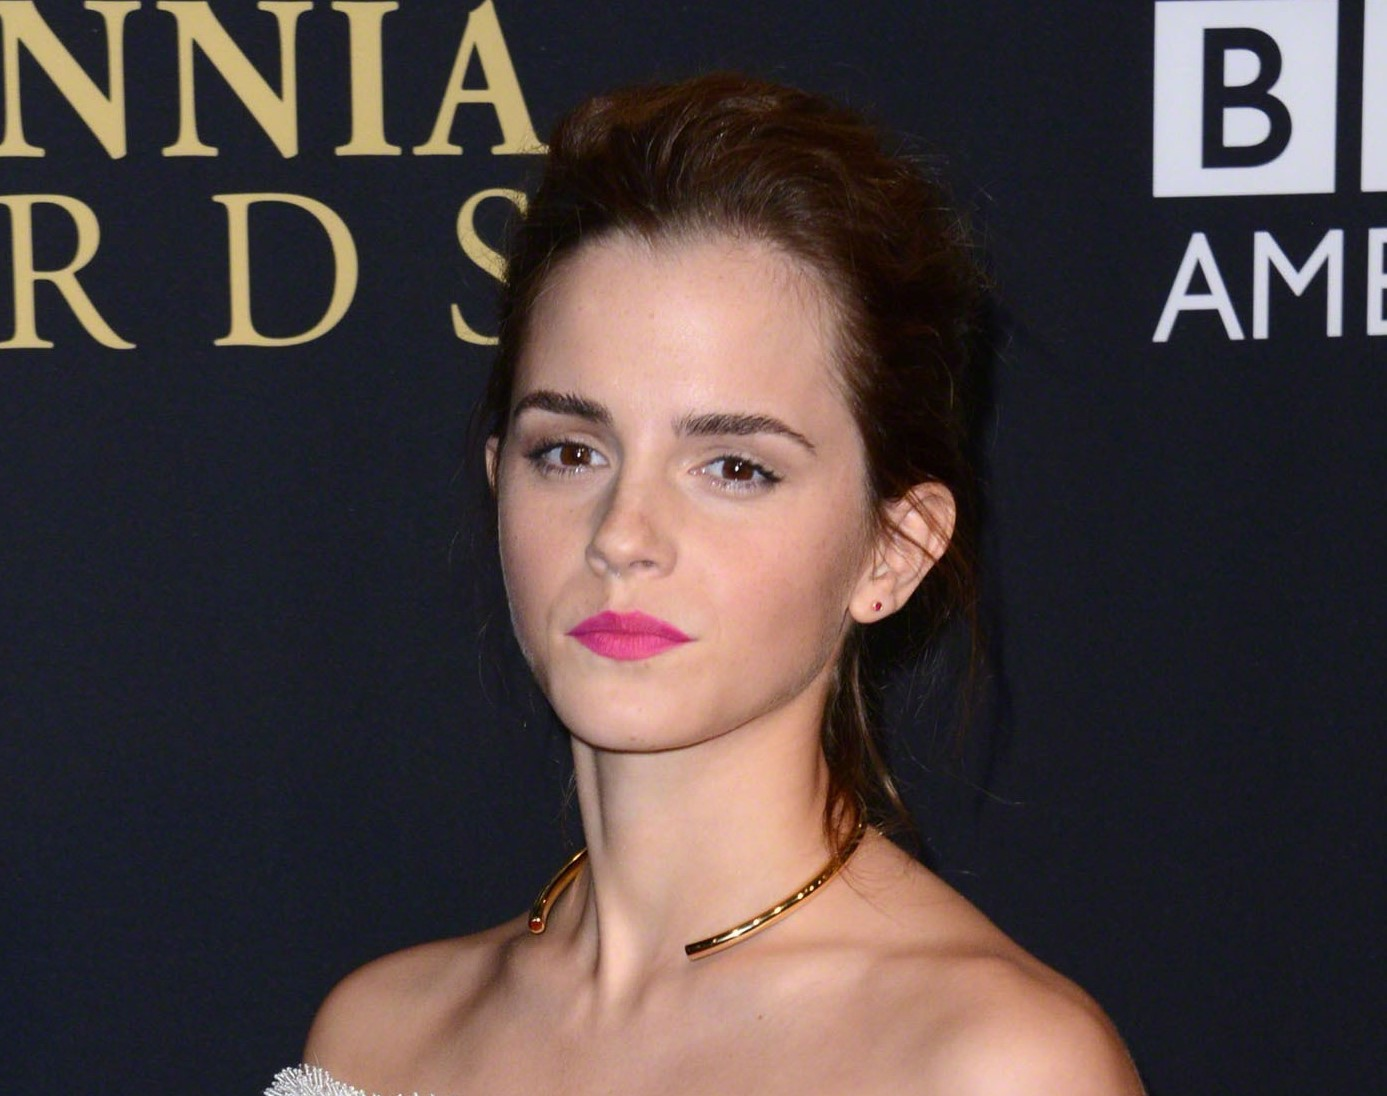 emma watson calls in lawyers after 'naked' pics appear online